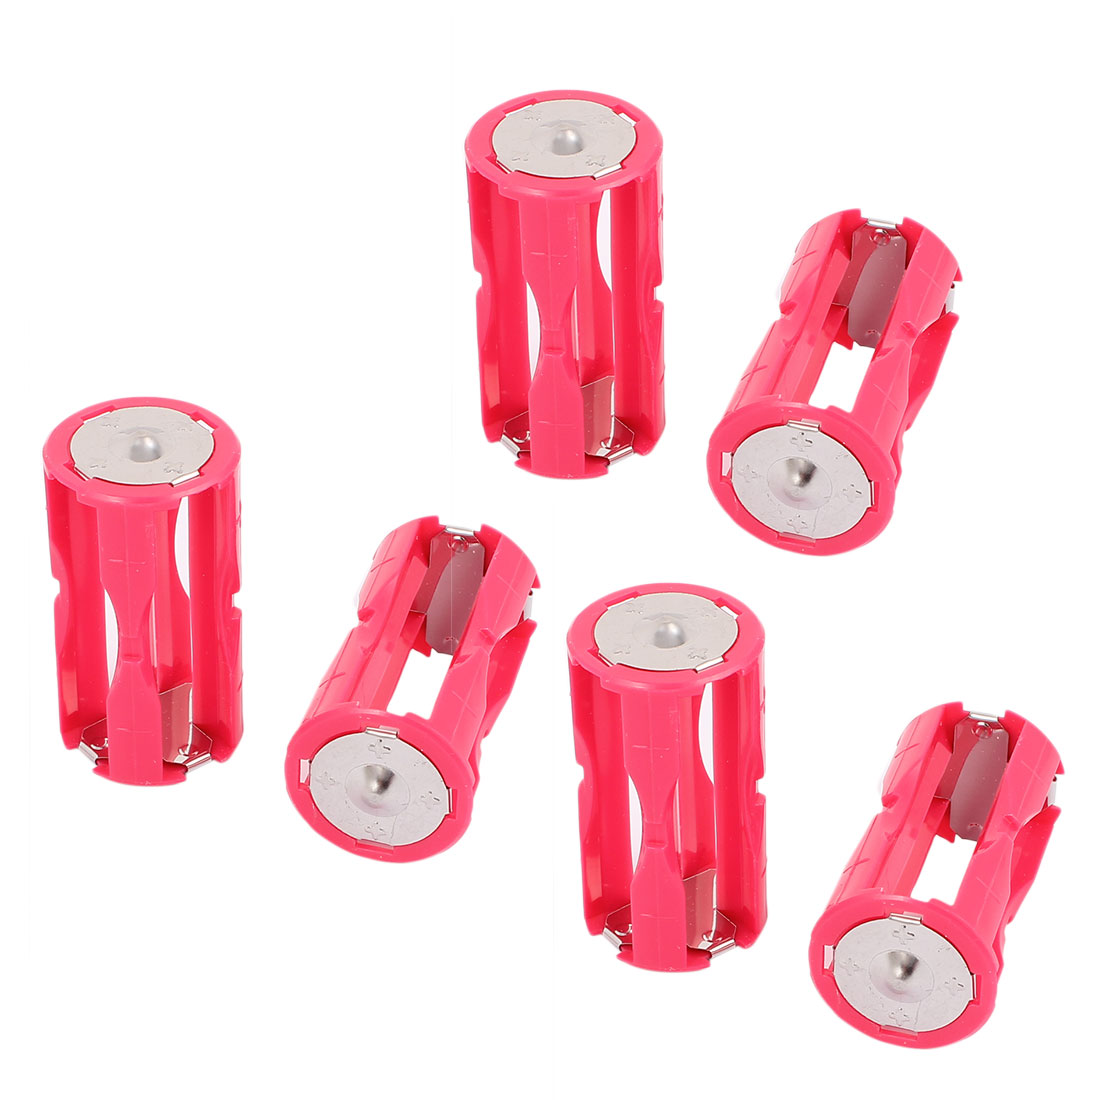 Housing Cylinder Batteries Holder Adapter for 4x1.5VAAA Battery Rose Red 6pcs